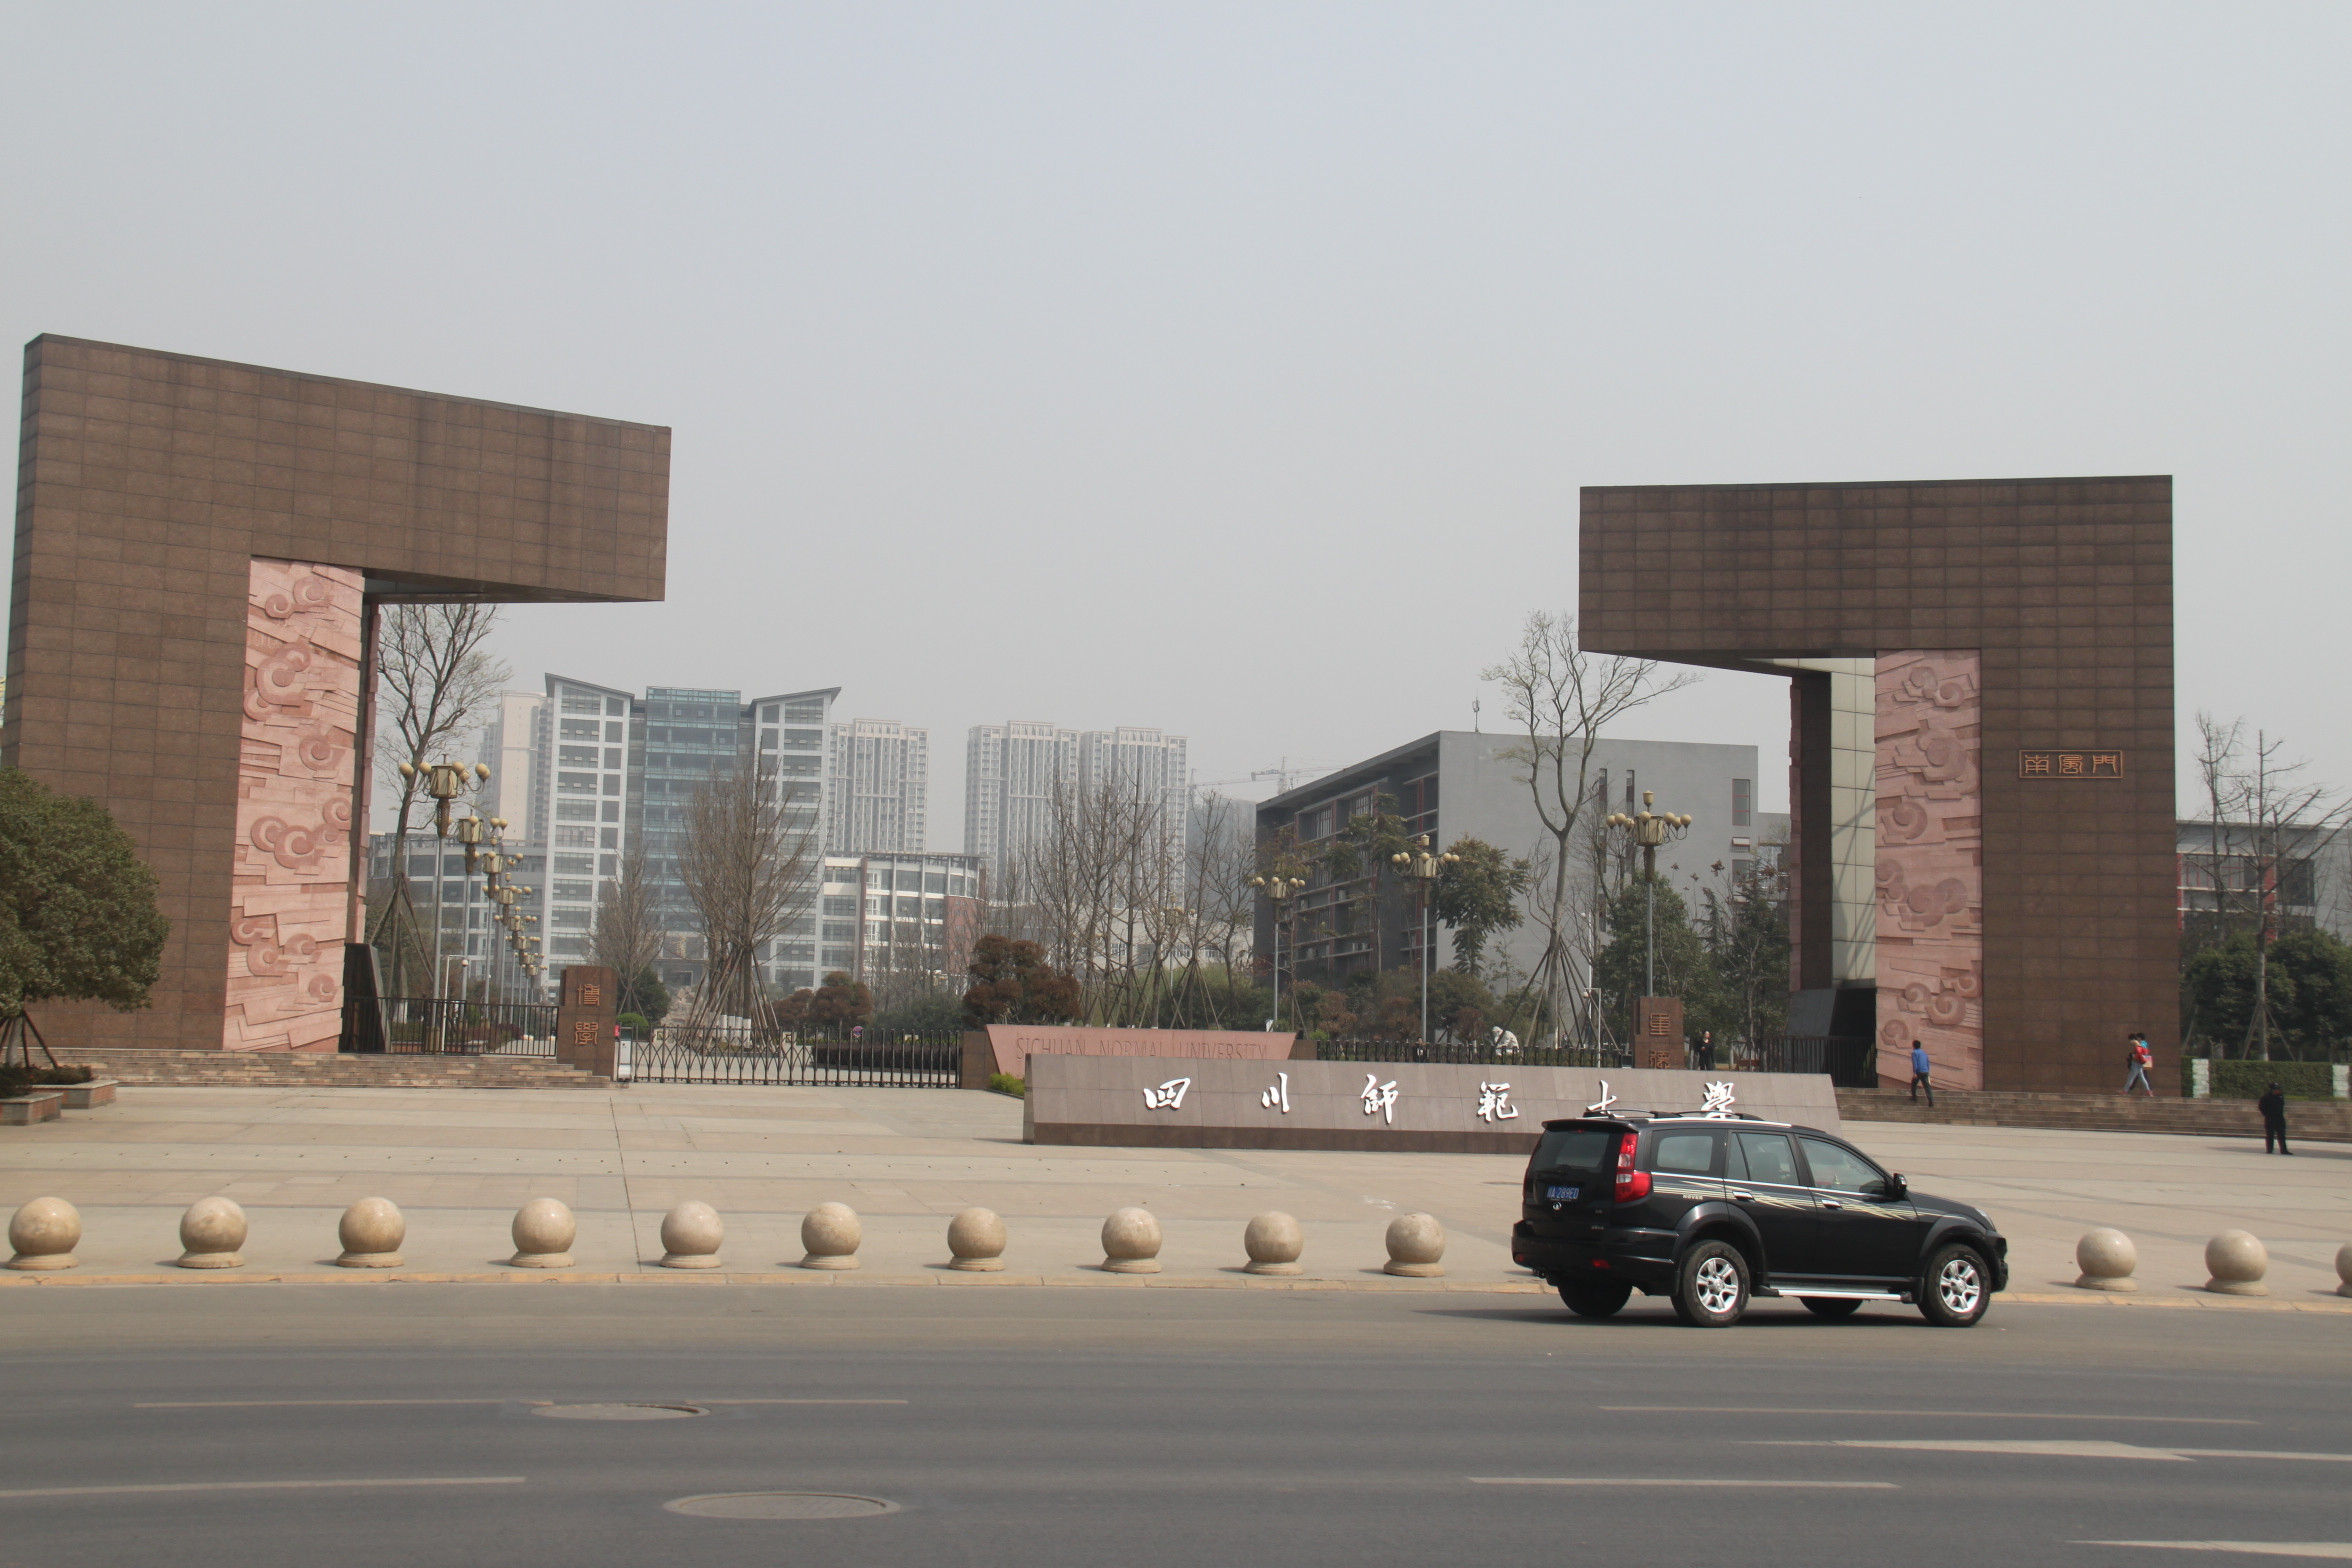 Chenglong Campus of Sichuan Normal University